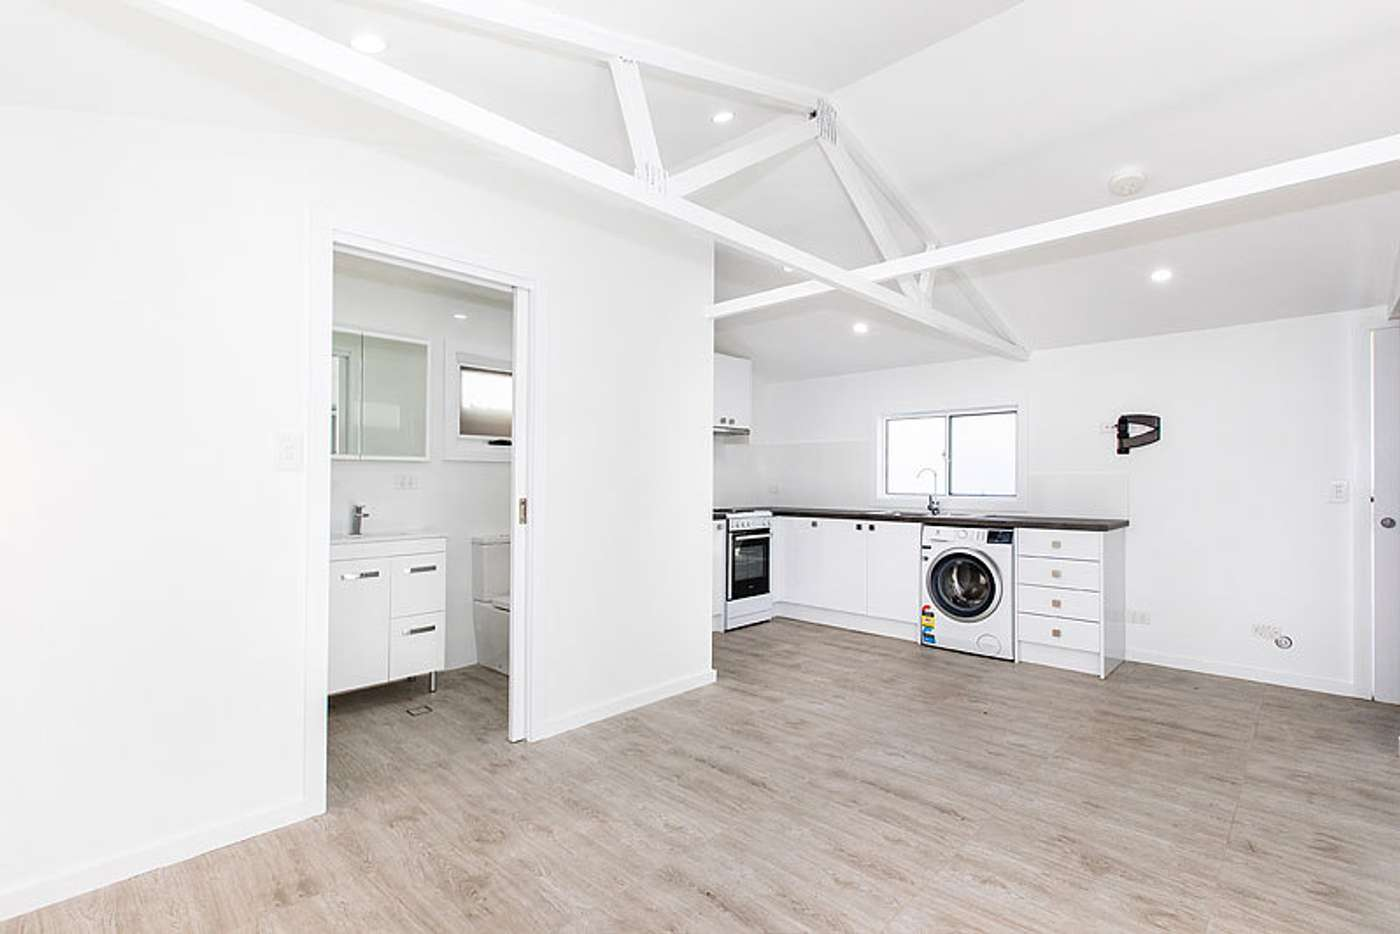 Main view of Homely studio listing, 411a Kingsway, Caringbah NSW 2229